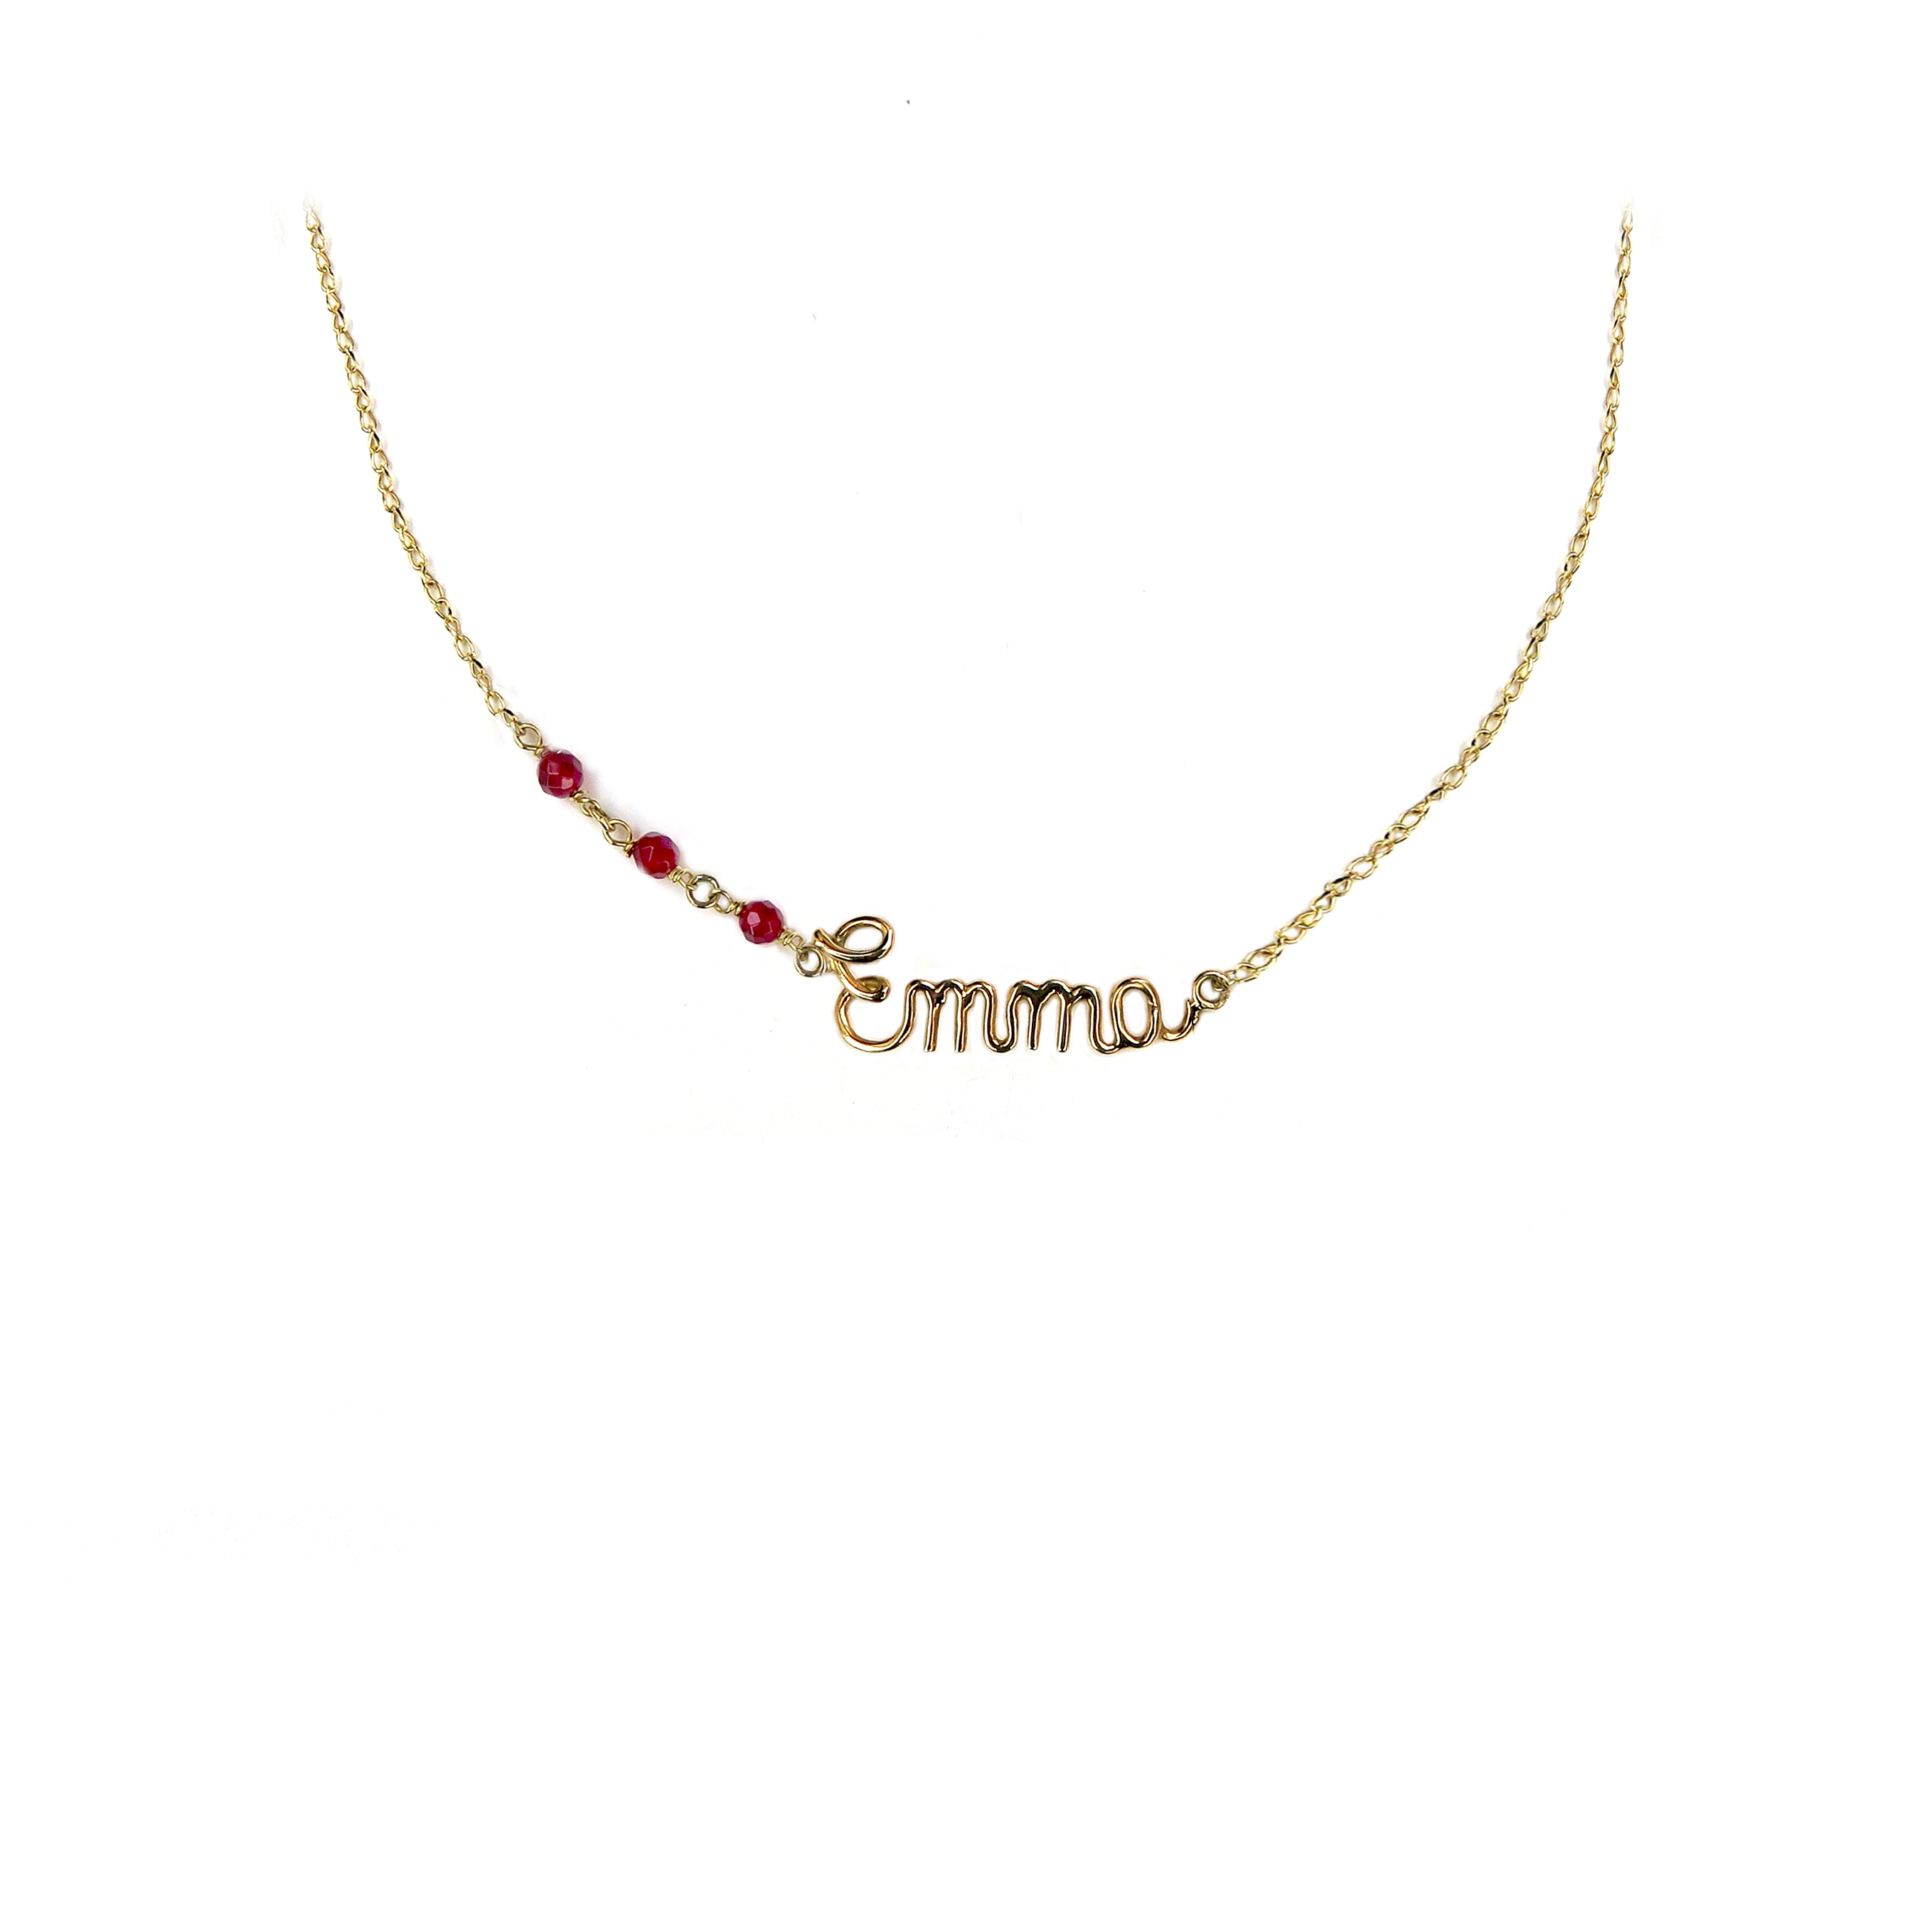 jewellery lou of anna london name products mg grace necklace